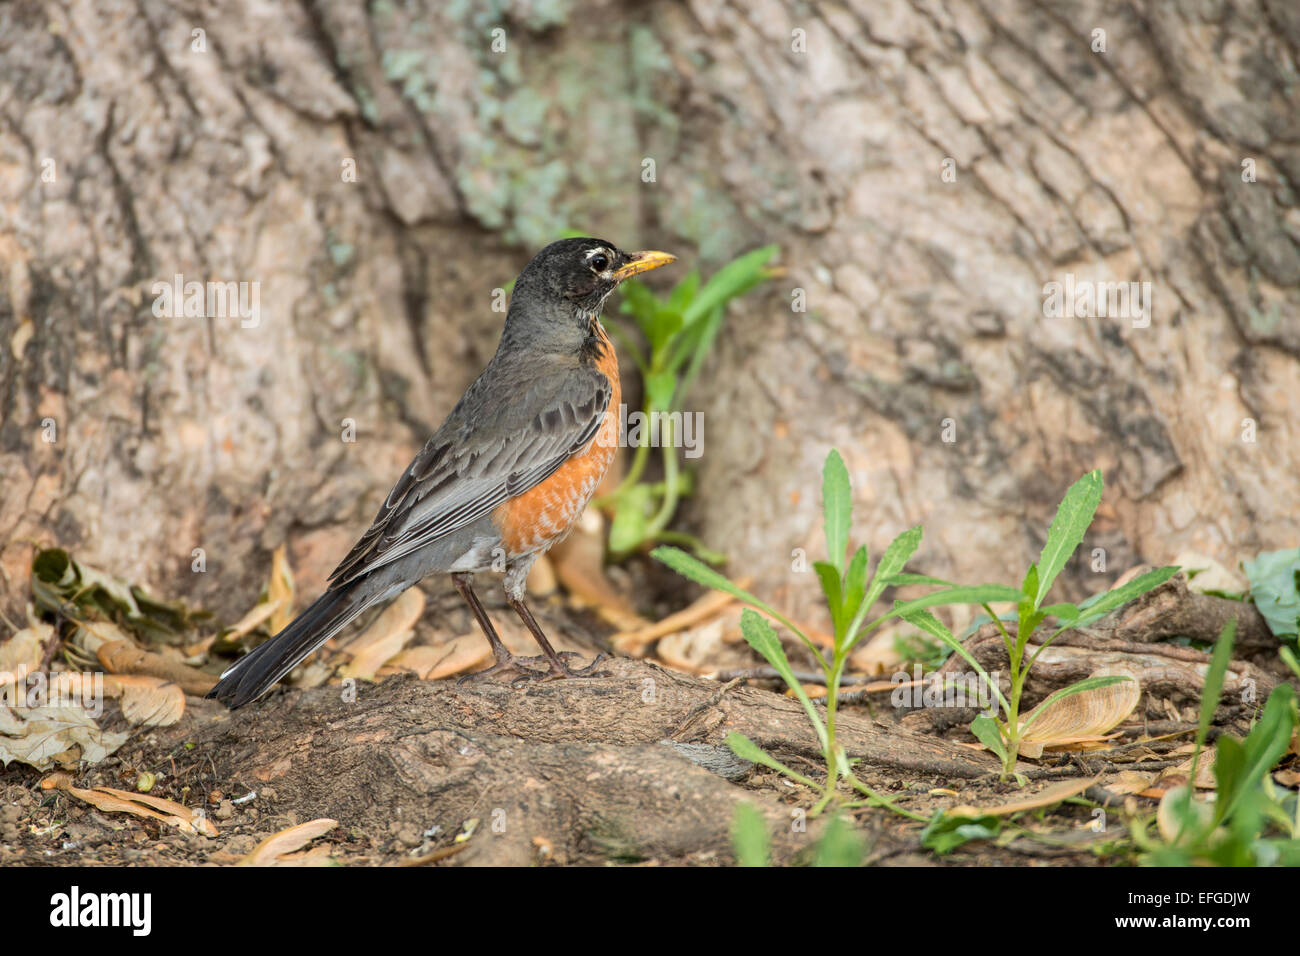 American Robin standing on tree root. - Stock Image